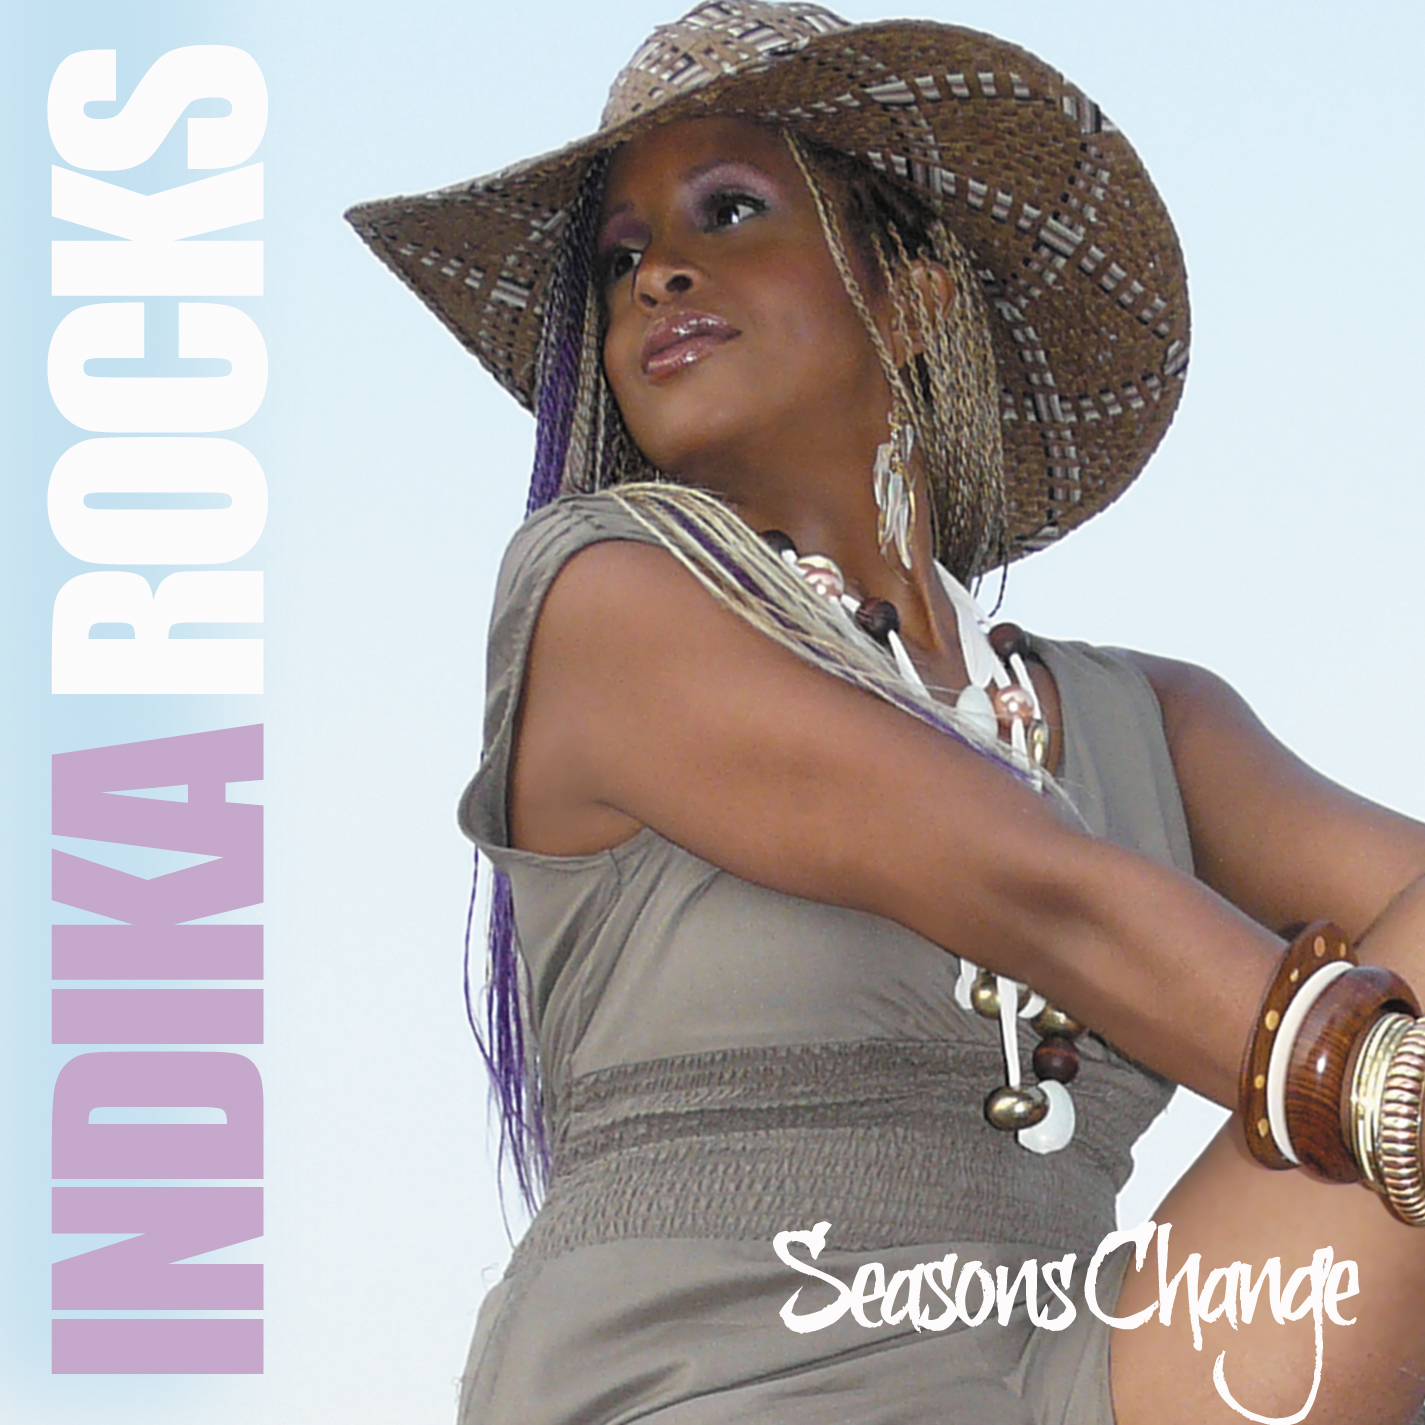 indika rocks seaons cd change